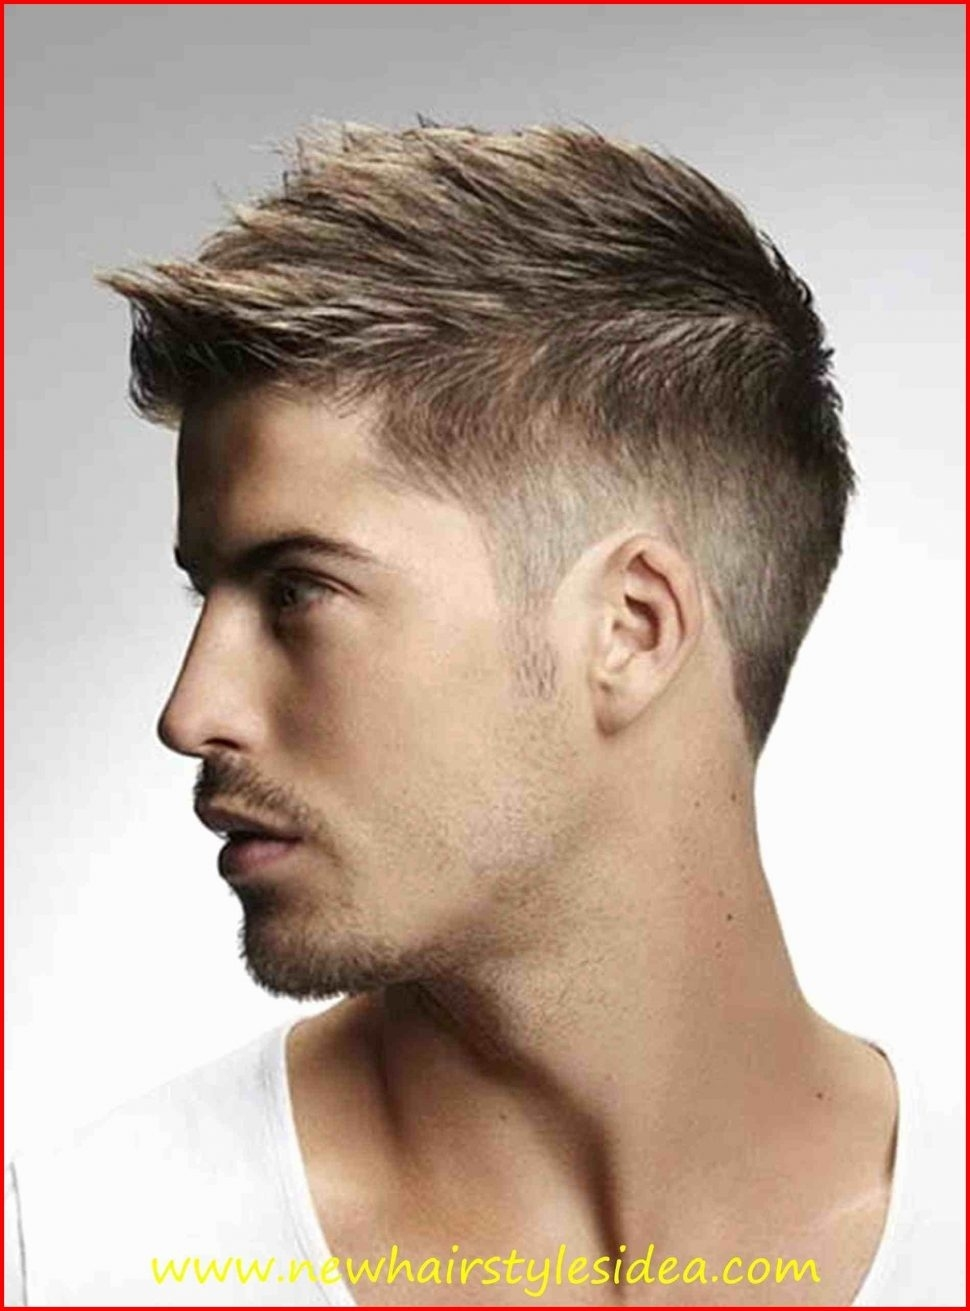 Hairstyles : Hair Style Boys Indian New Gents Cutting Man Photo for Big Hairstyle Boy Indian